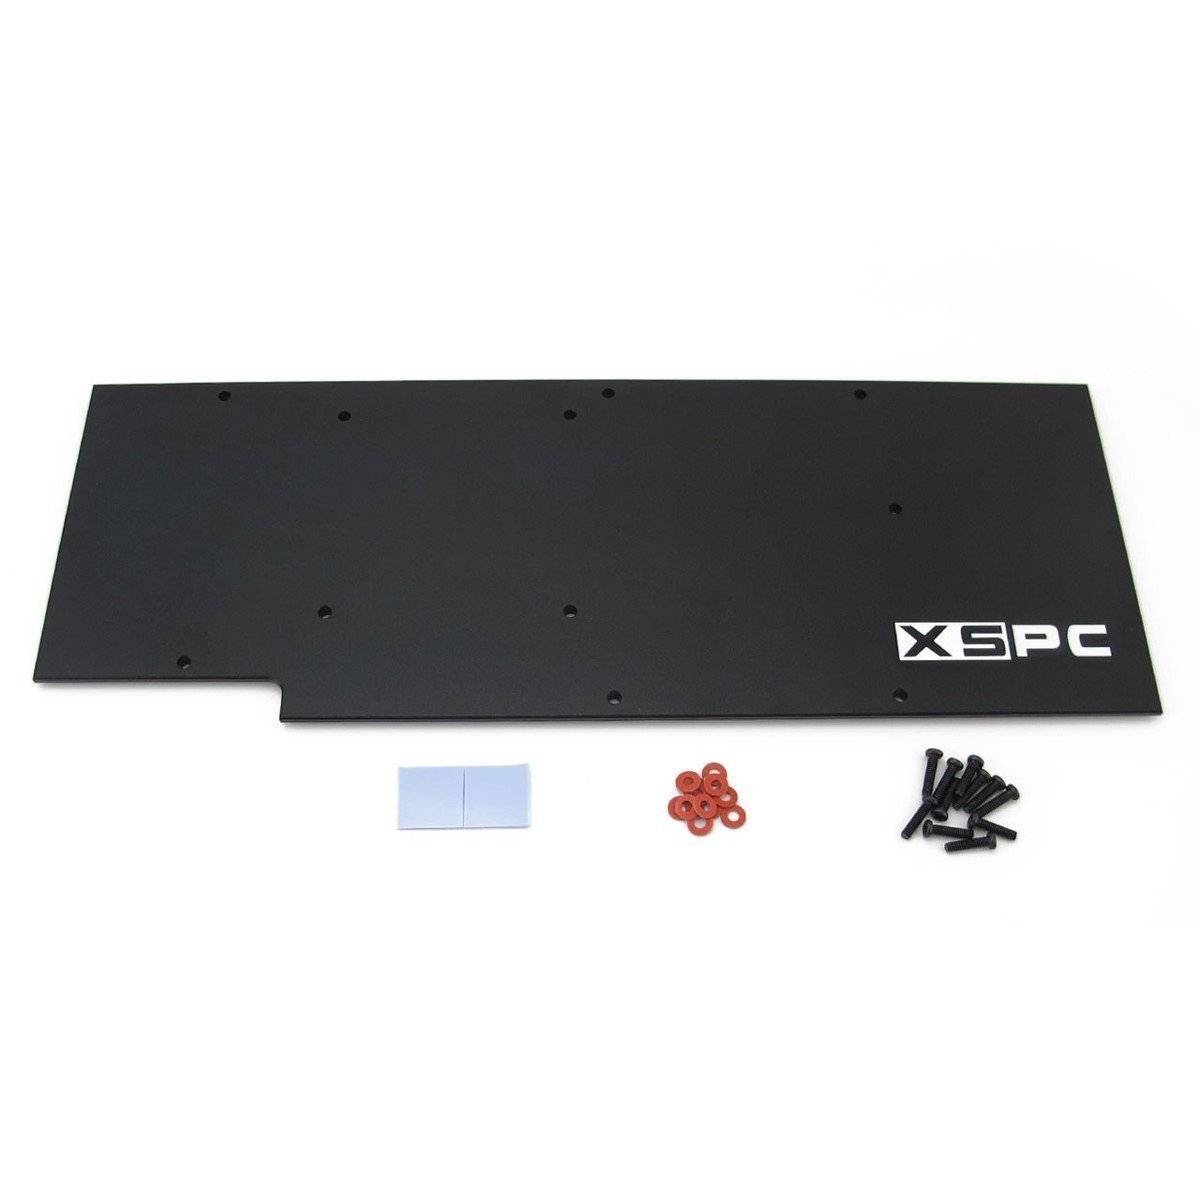 XSPC Razor GTX 1080 GPU Backplate V2 (For Reference Cards Only)